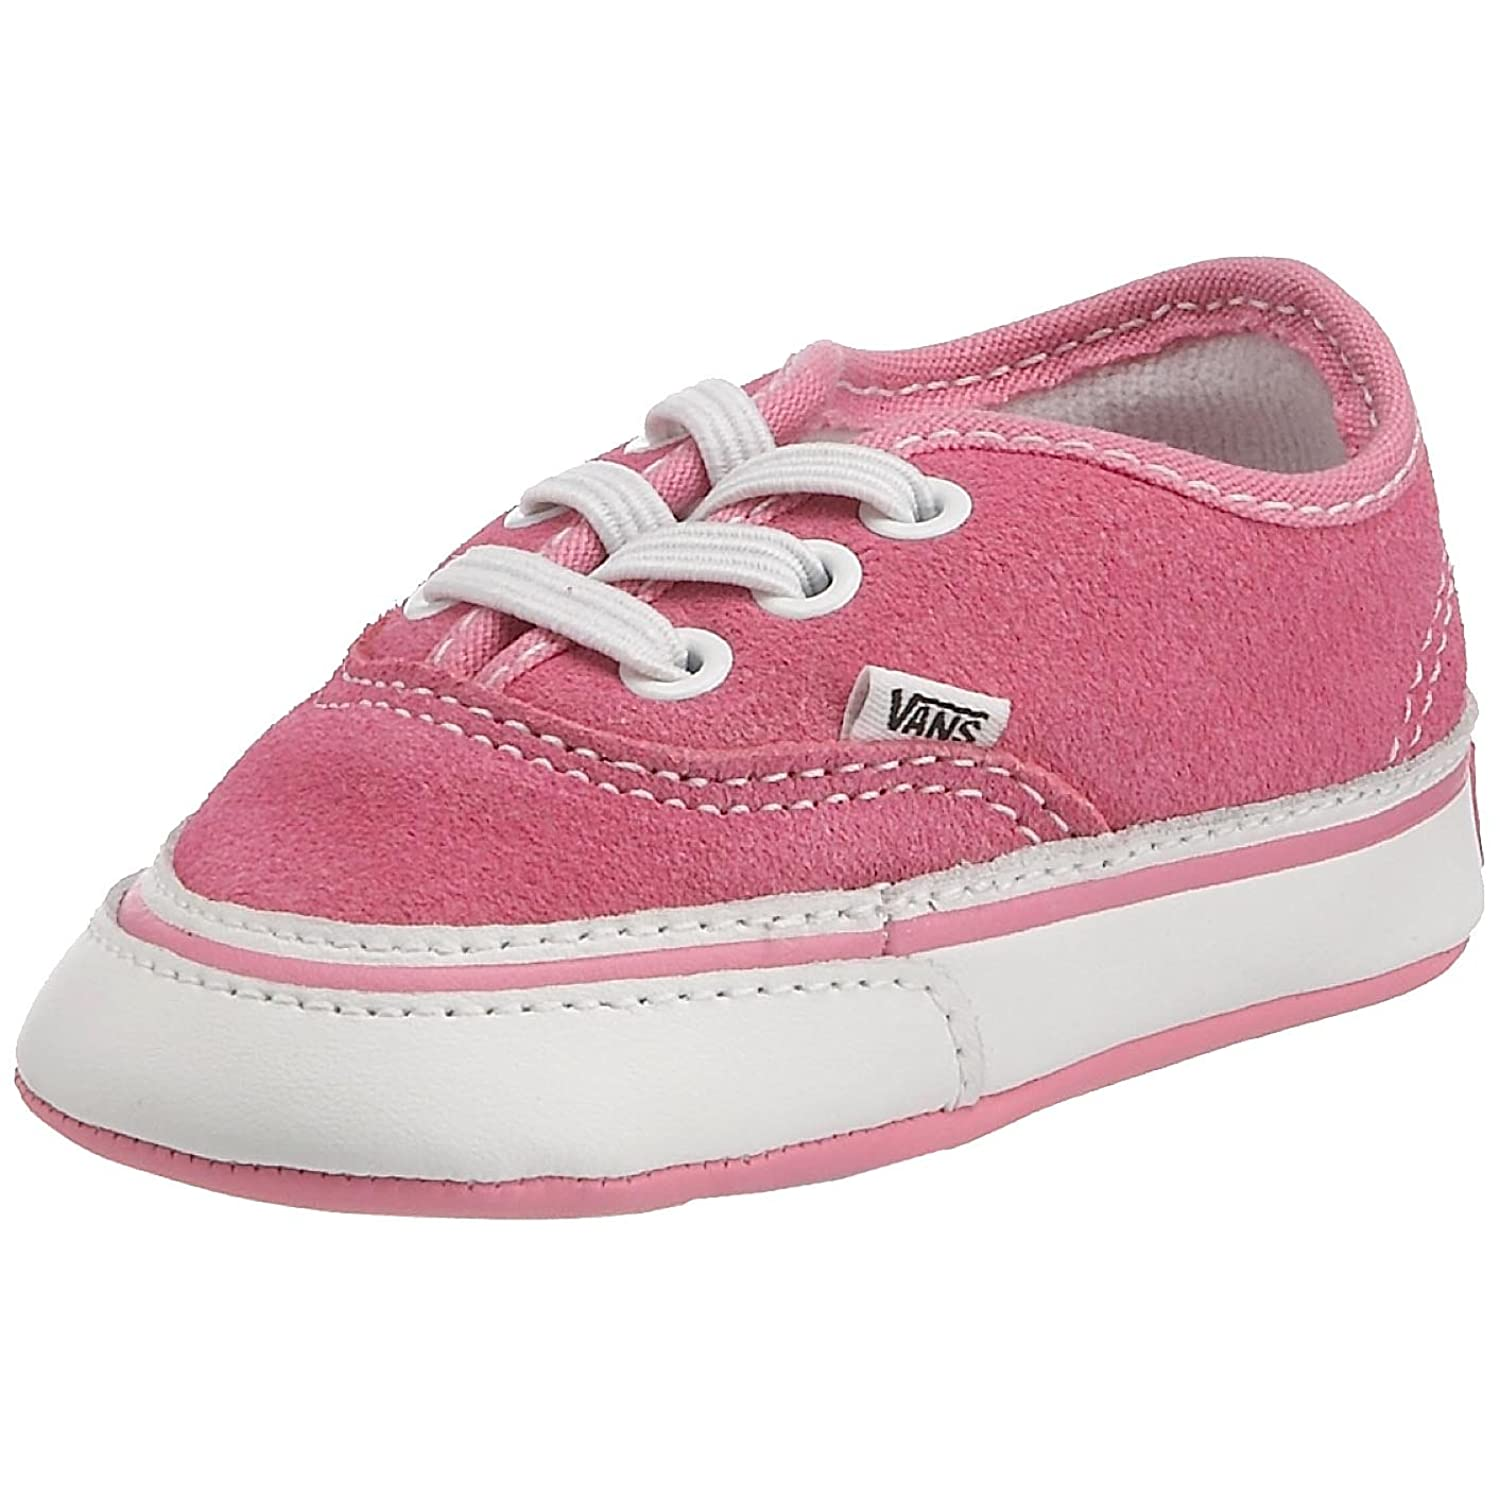 Vans Authentic Uni Childs Low Top Trainers Pink White 3 5 UK